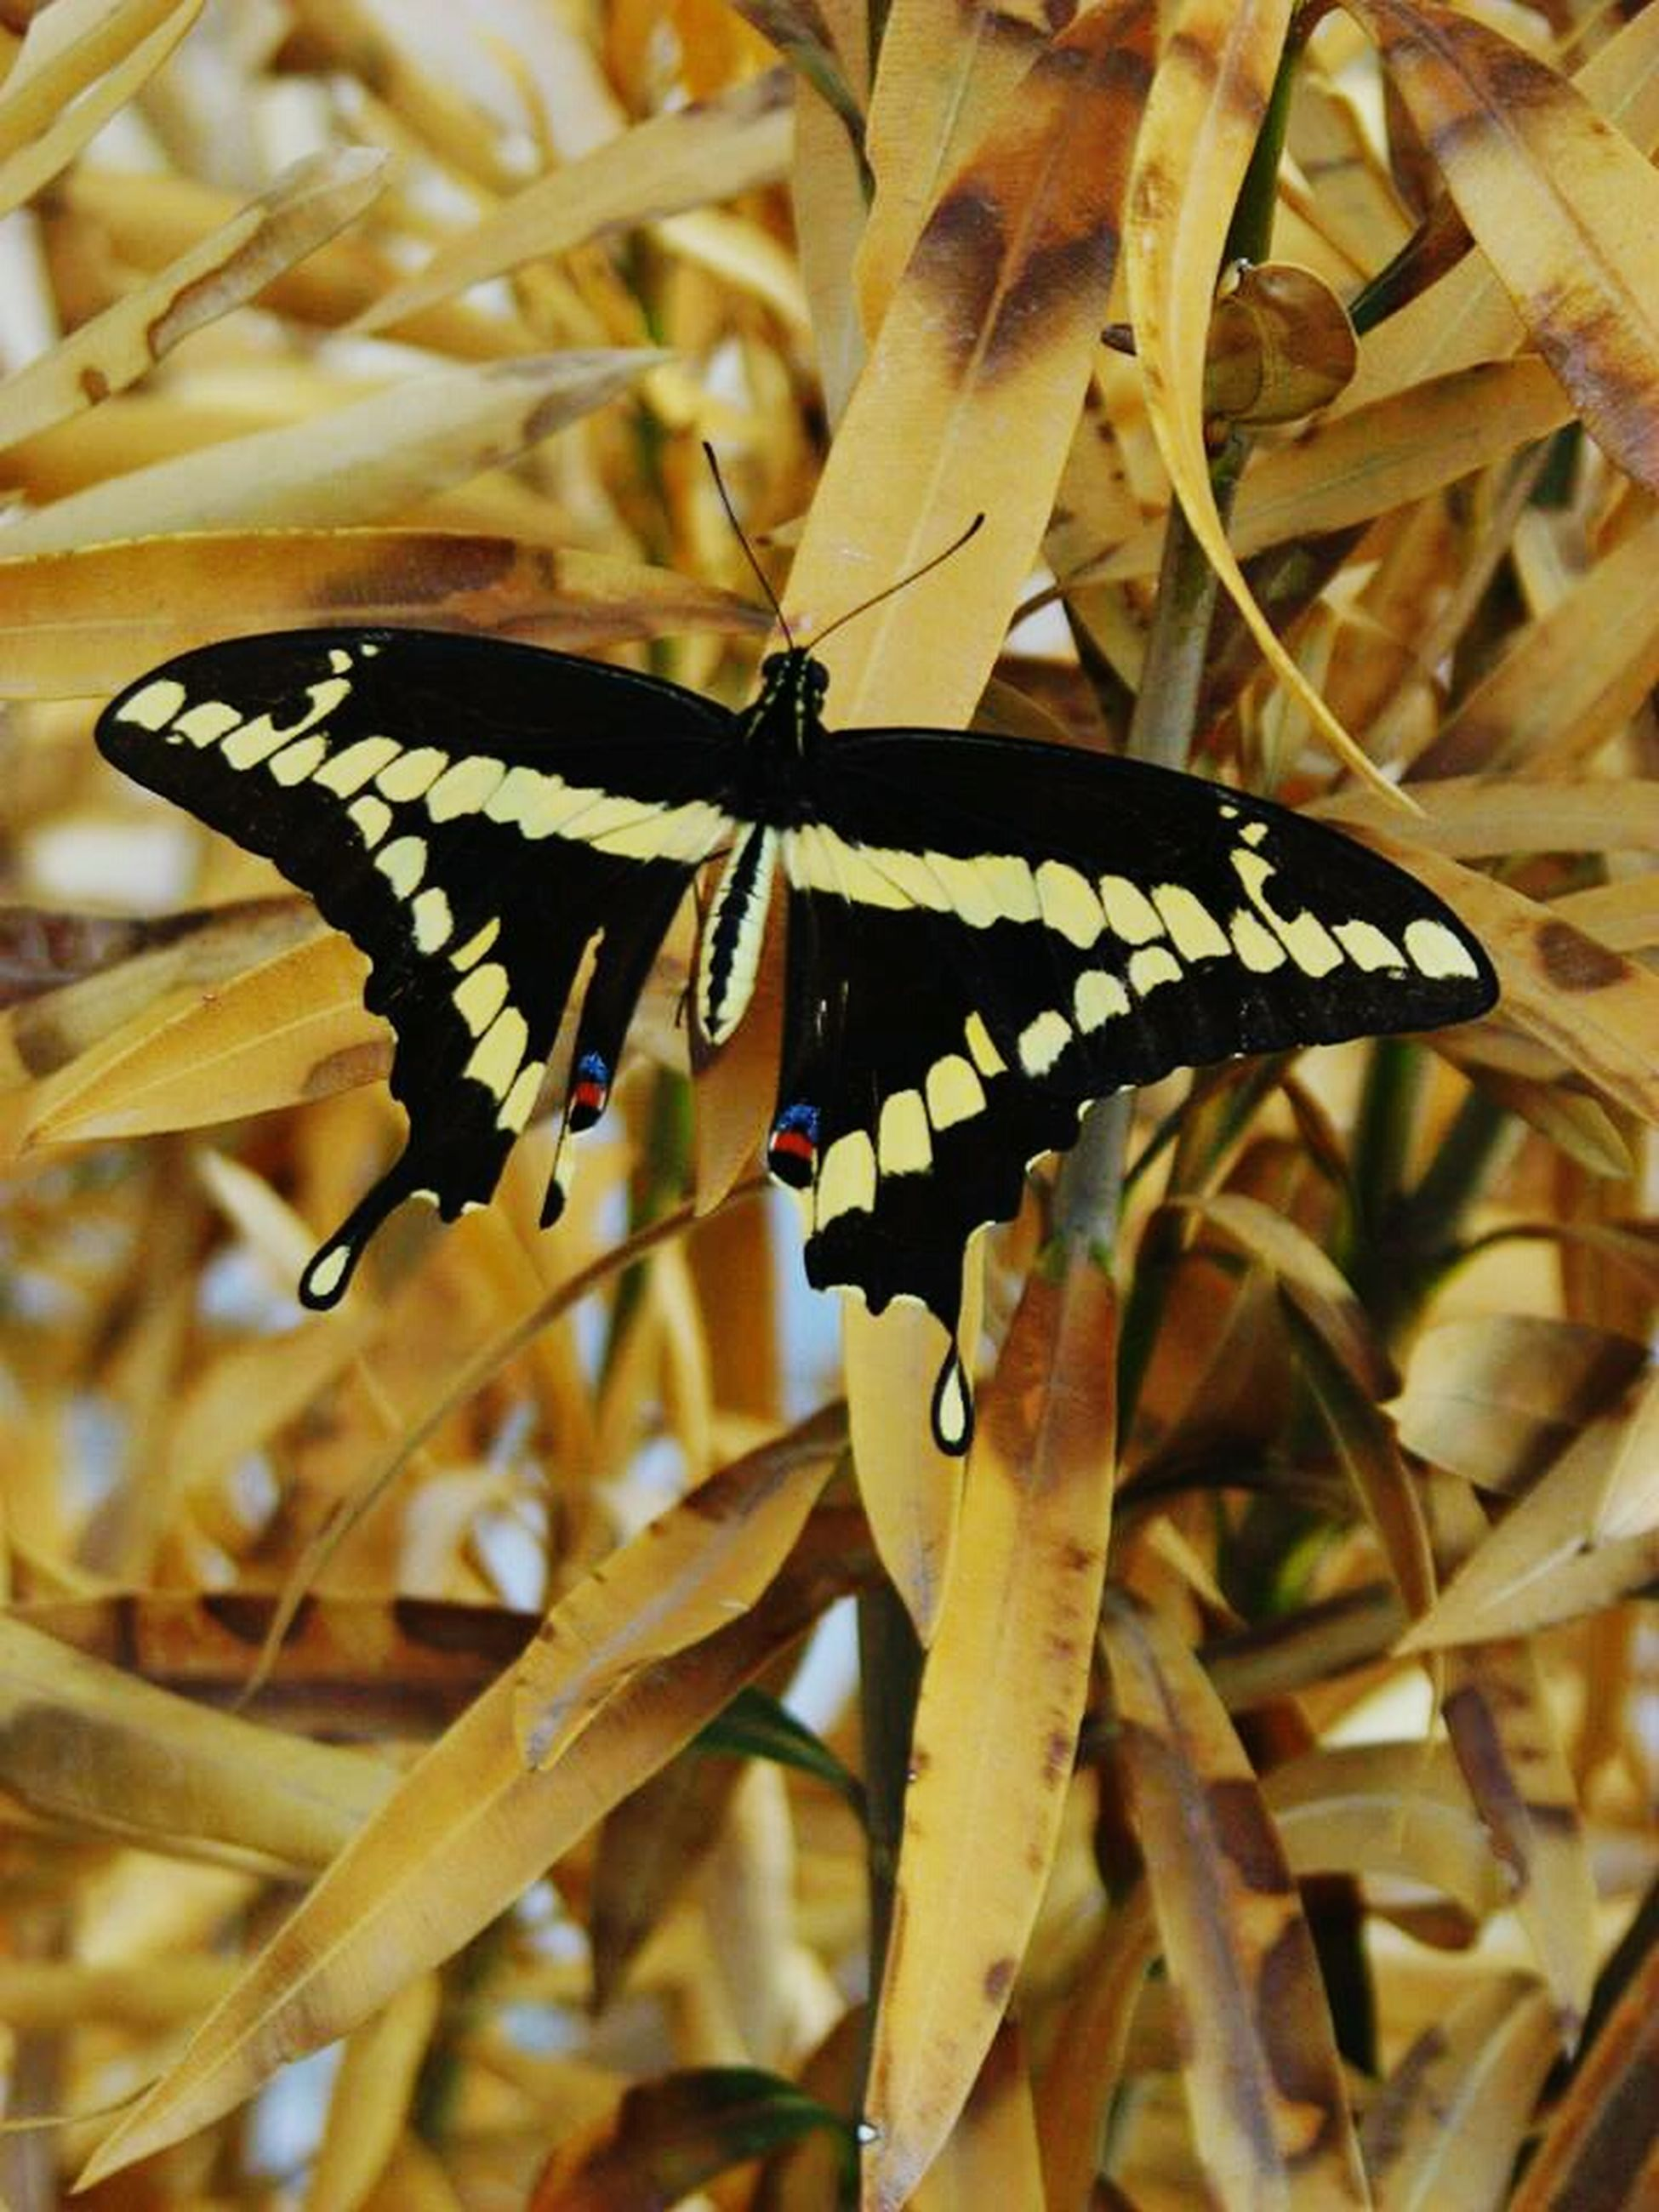 animals in the wild, insect, one animal, animal themes, wildlife, butterfly - insect, close-up, focus on foreground, butterfly, plant, animal markings, leaf, nature, animal wing, beauty in nature, selective focus, growth, day, outdoors, fragility